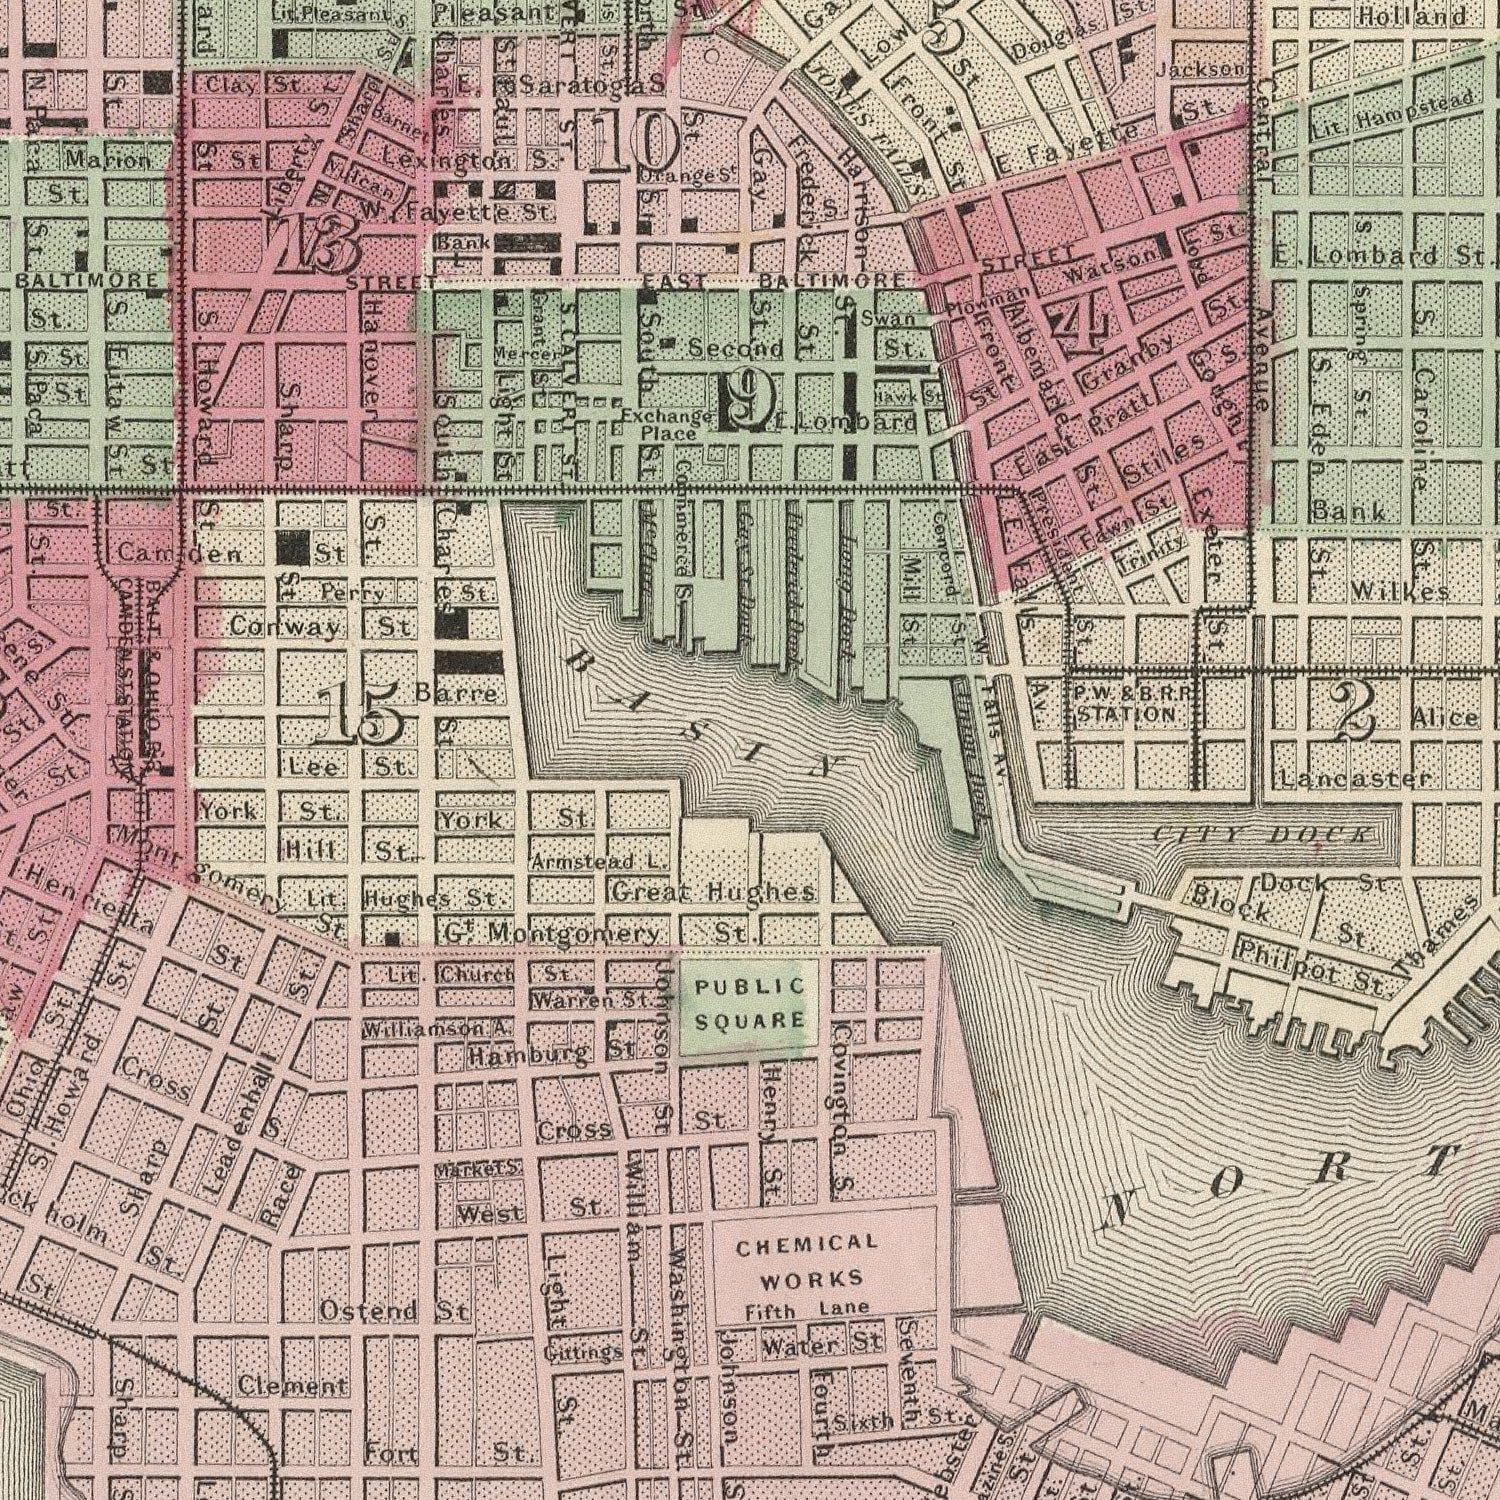 Vintage Map of Baltimore, Maryland 1865